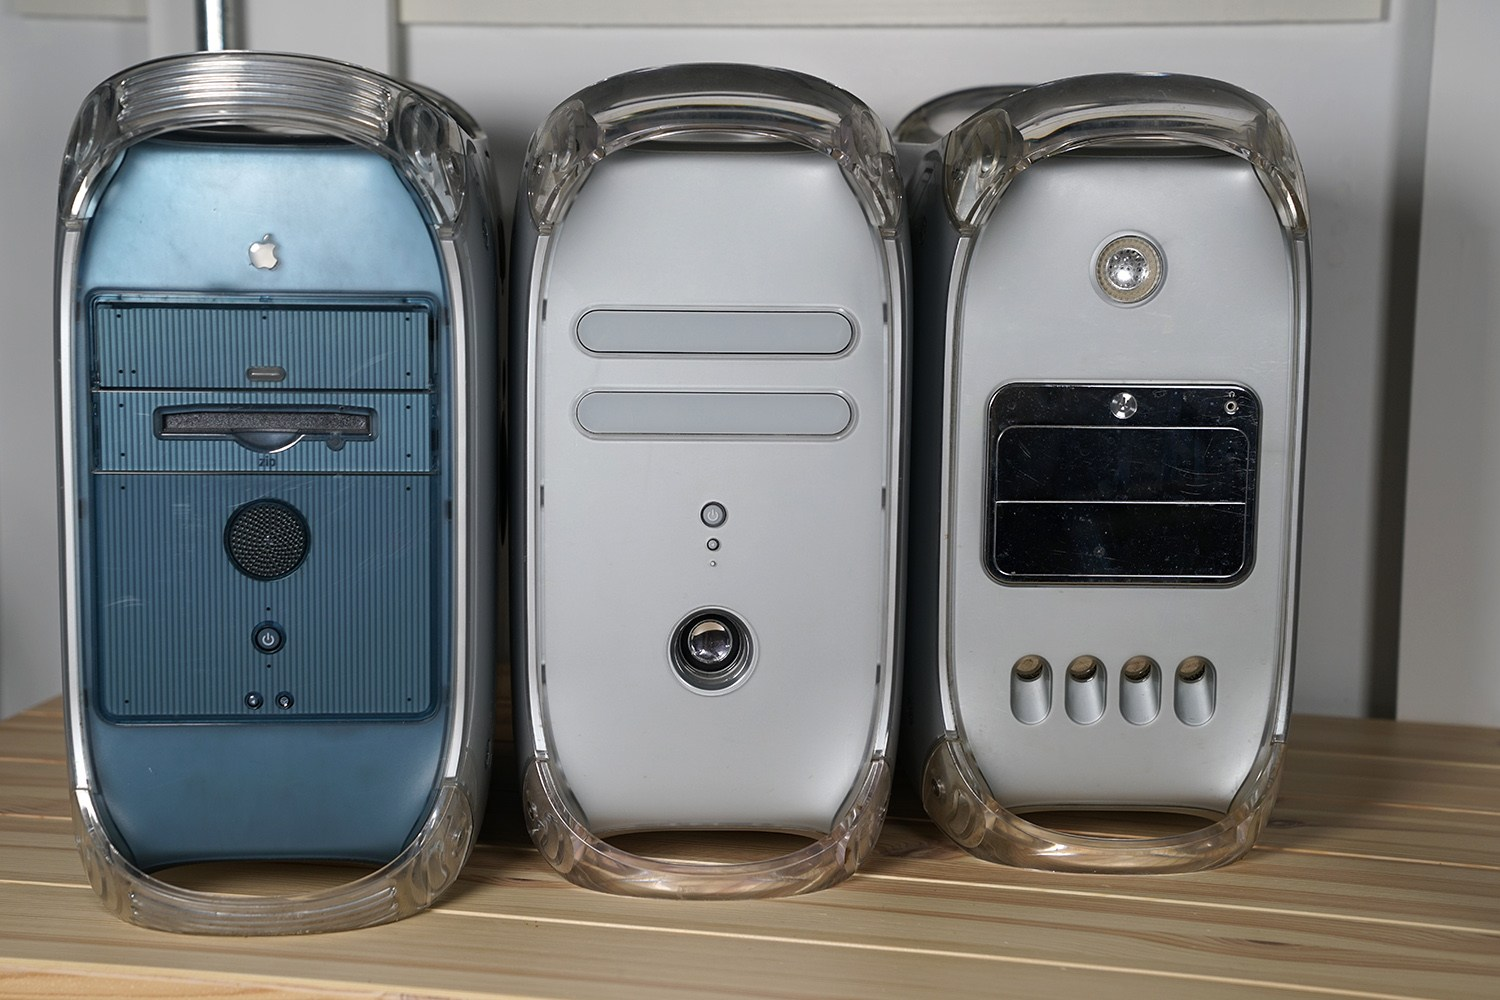 The Power Mac G4 Line - MacStories